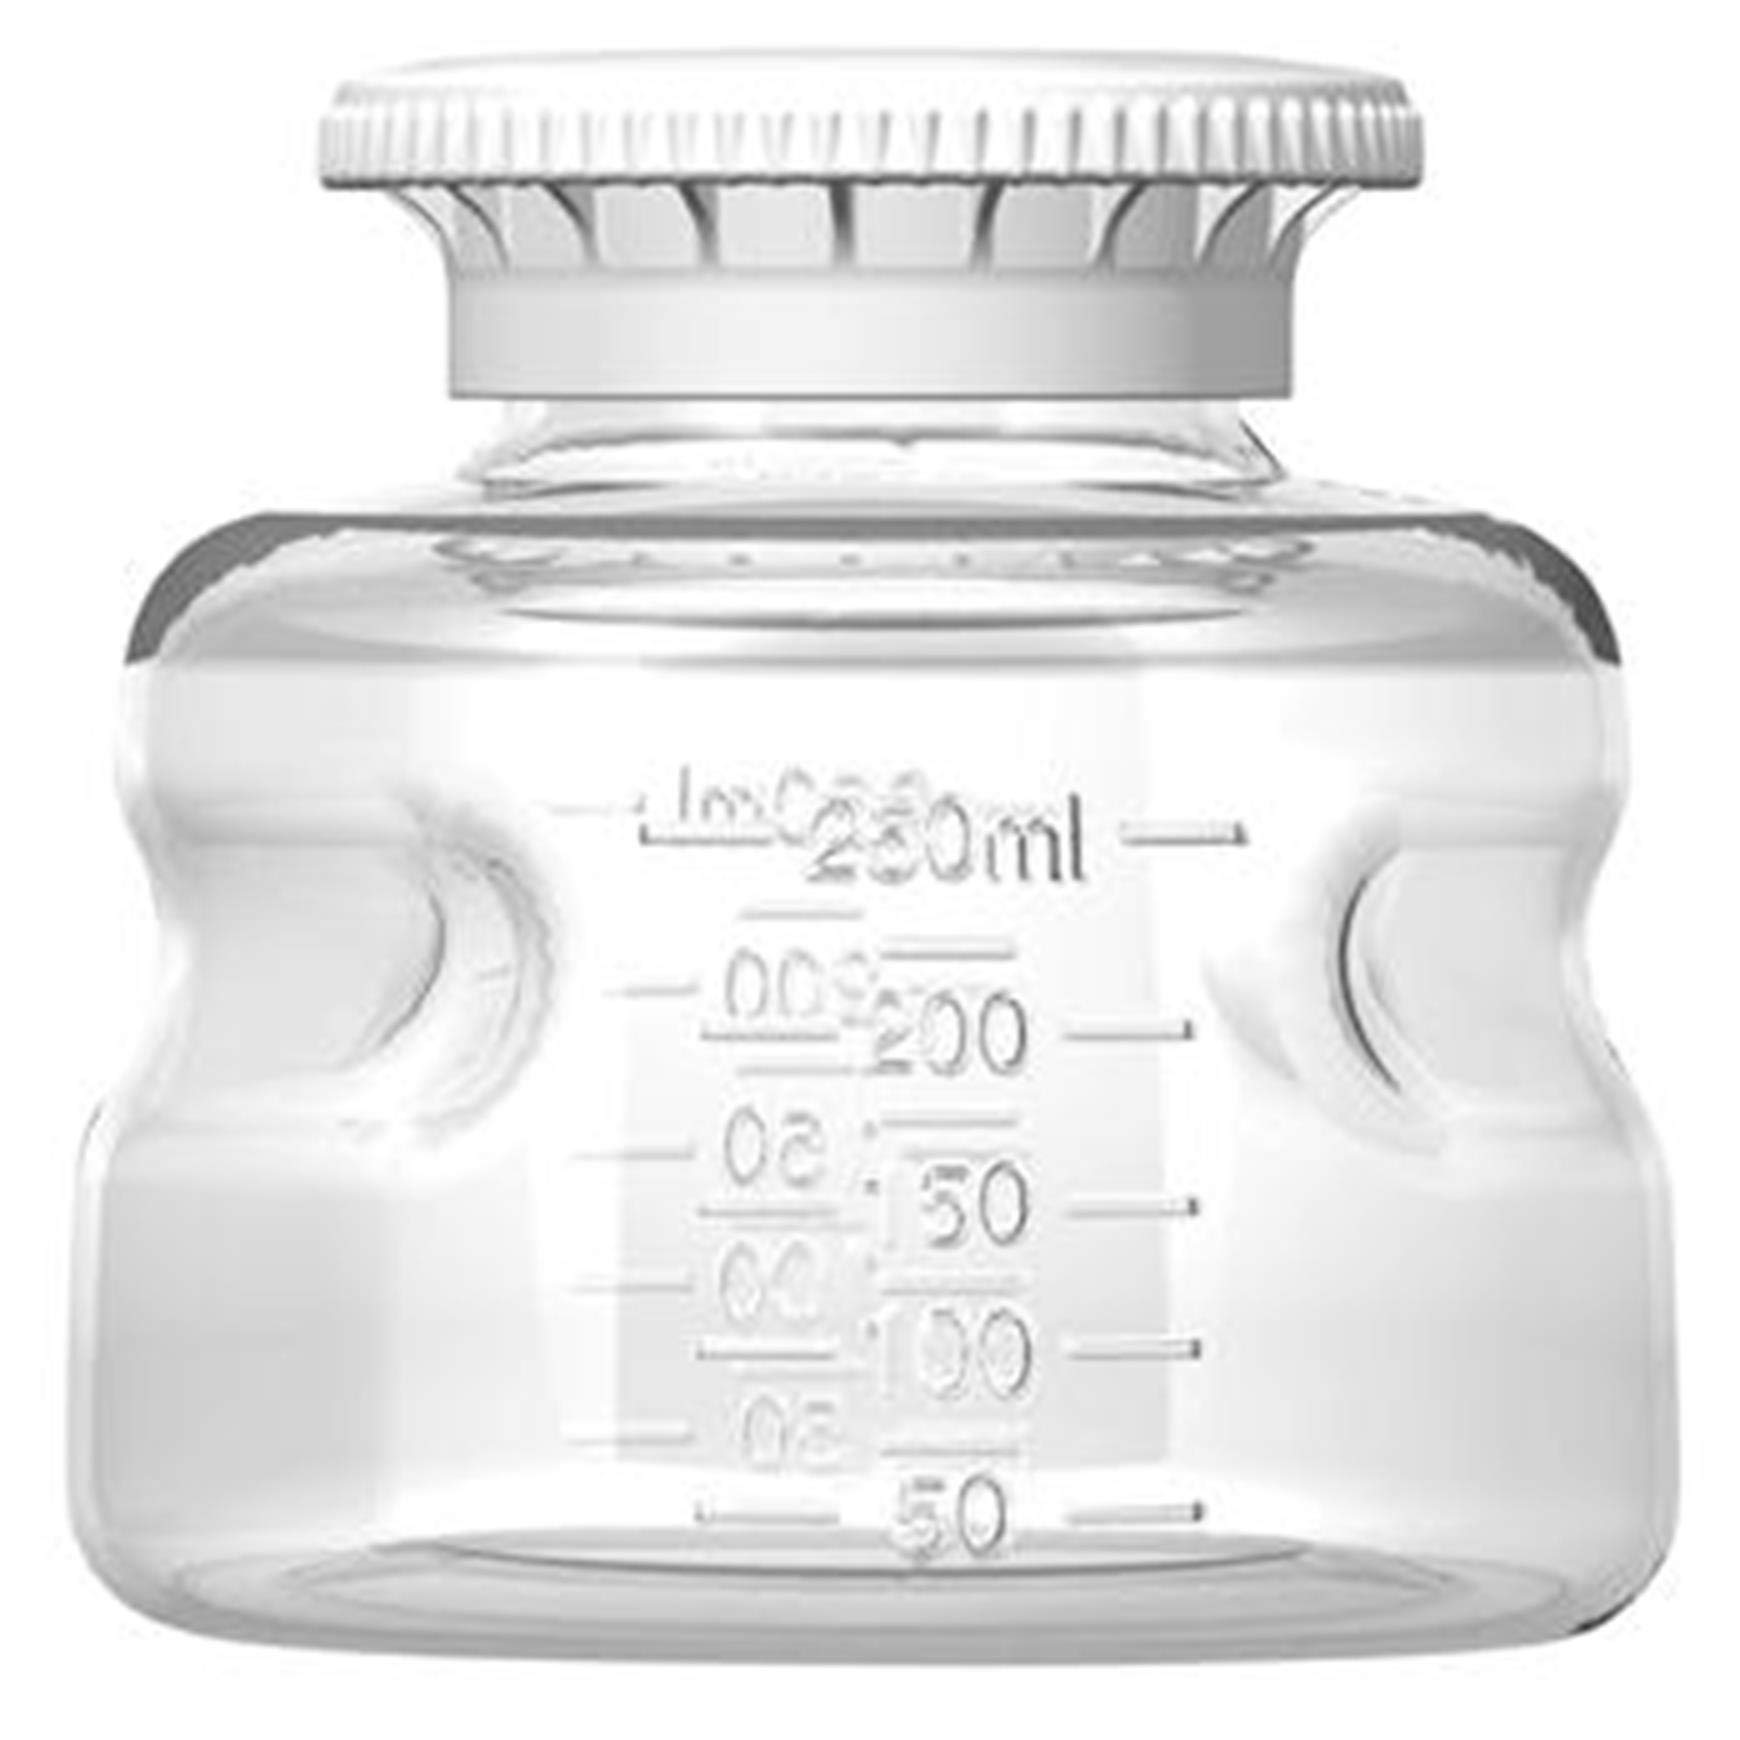 Autofil Polystyrene Non-Sterile Disposable Media Bottle with Polypropylene Cap, 250ml Volume (Pack of 24) by Foxx Life Sciences